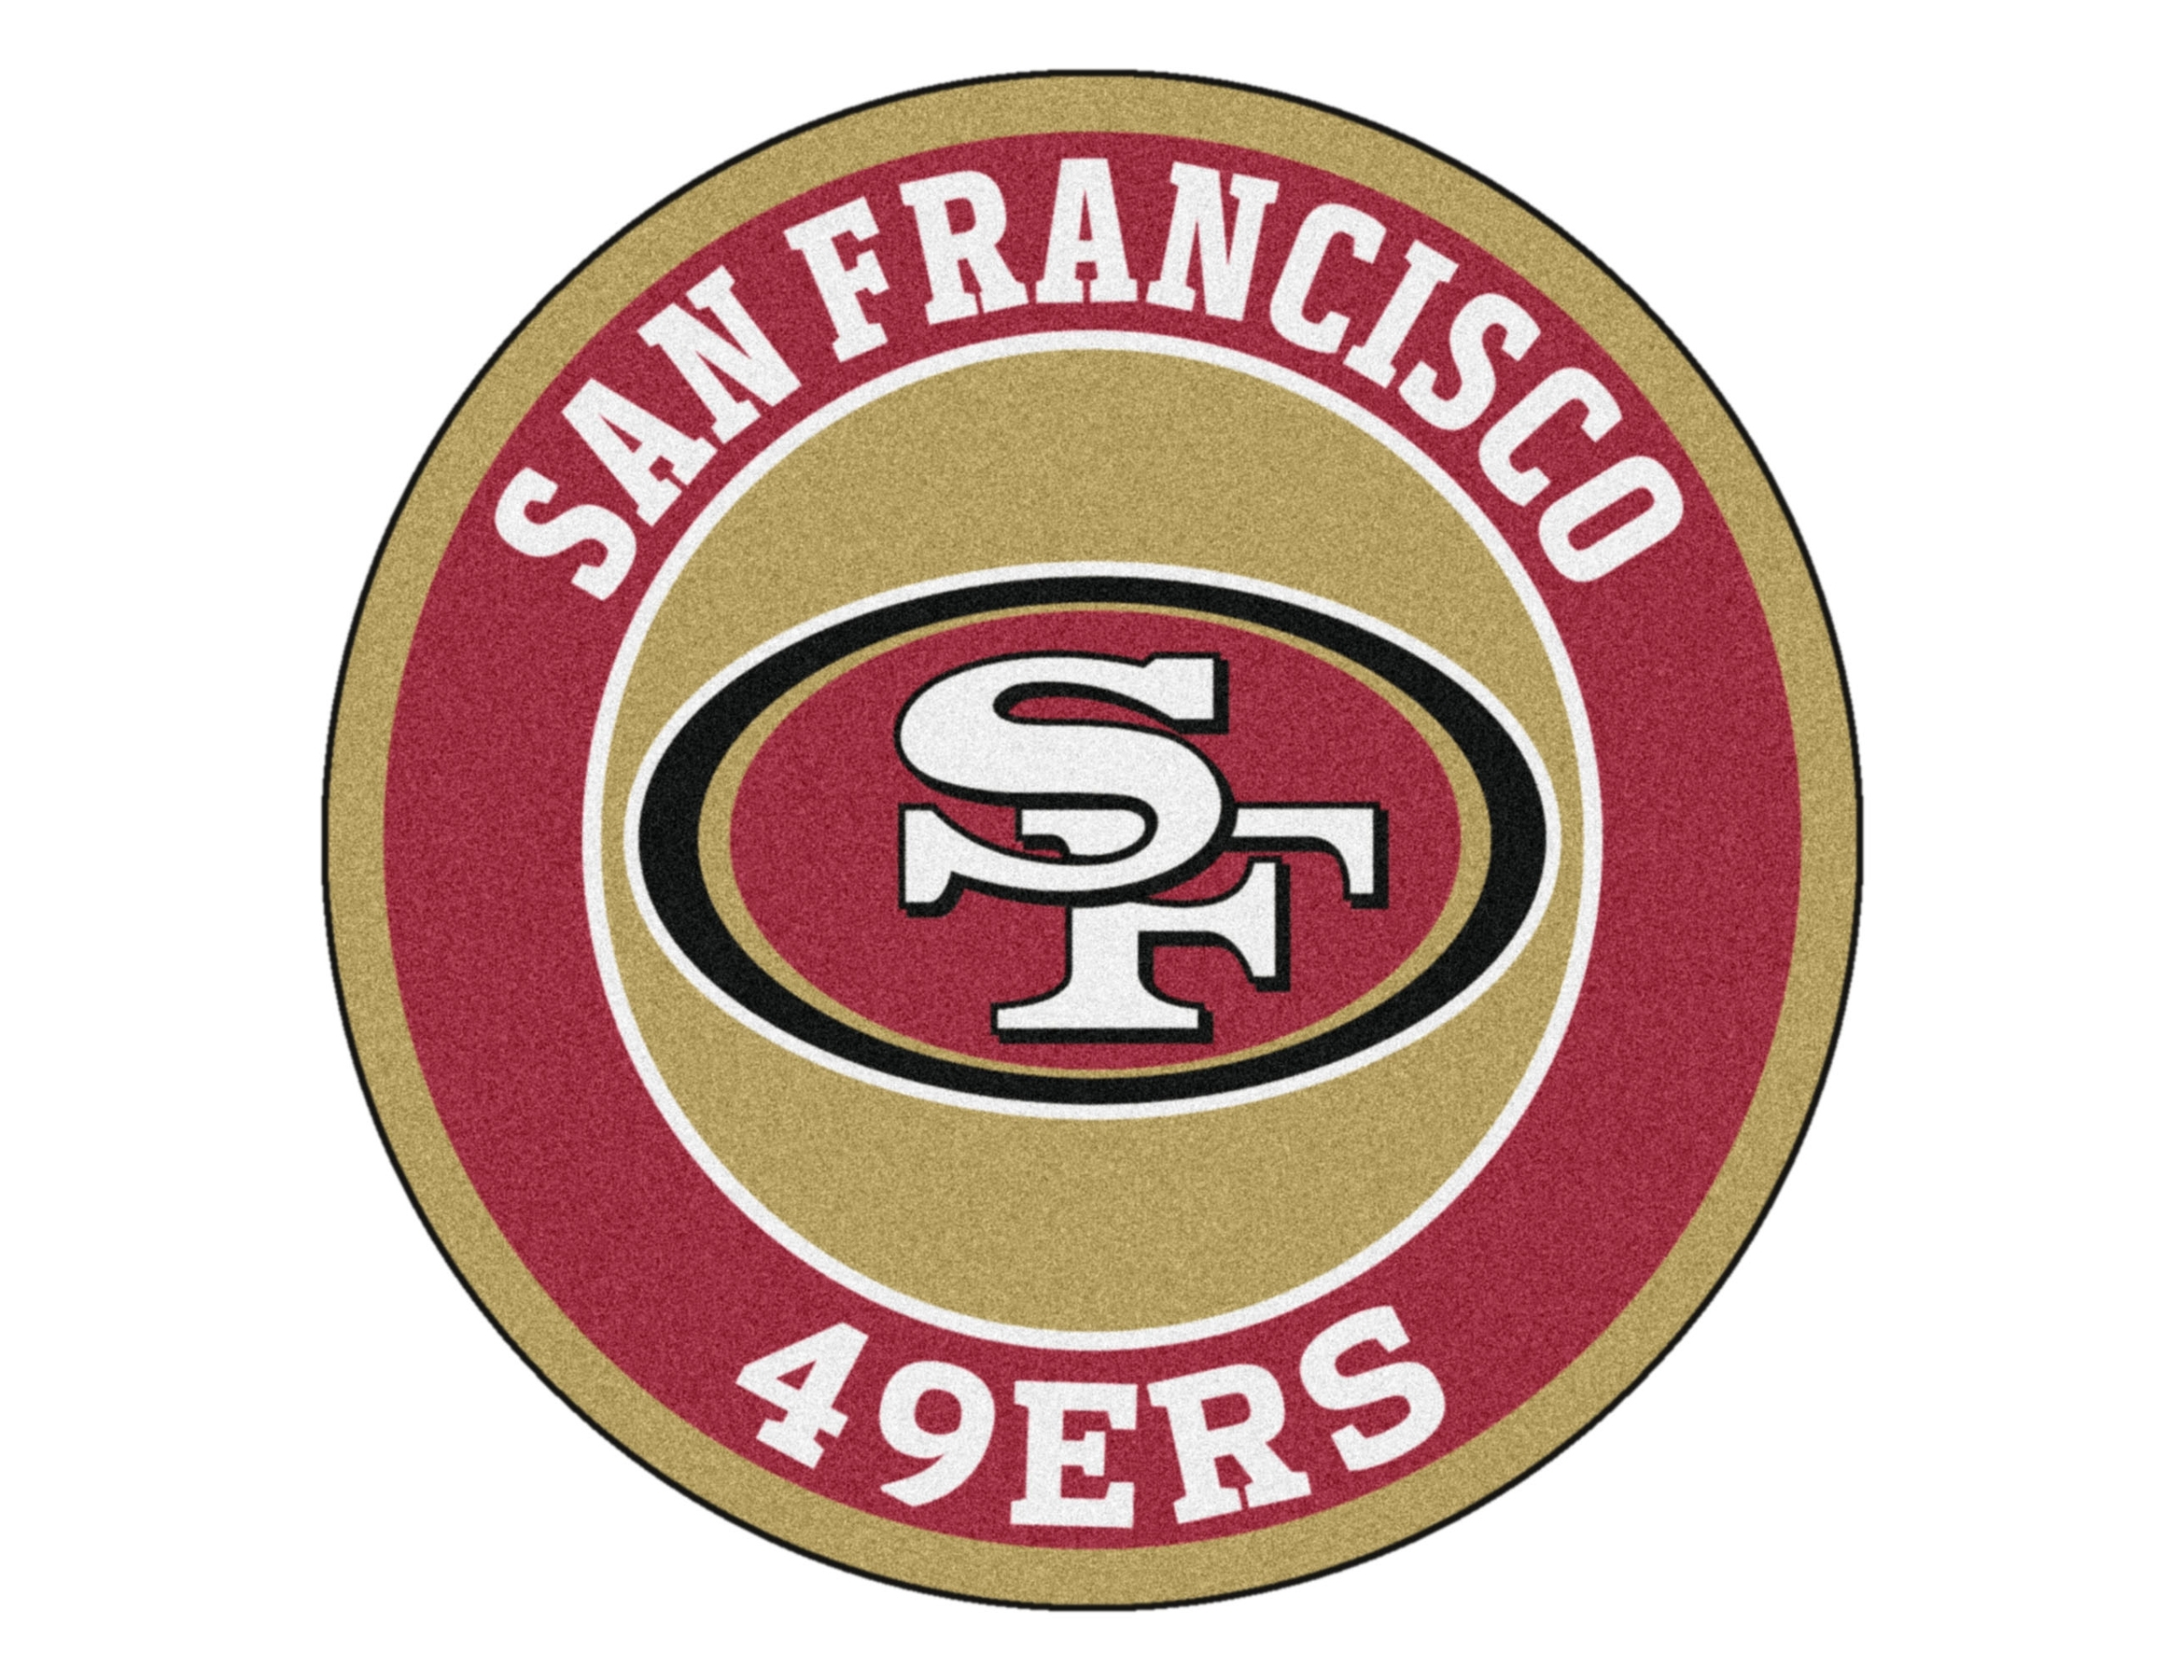 san francisco 49ers logo, 49ers symbol meaning, history and evolution